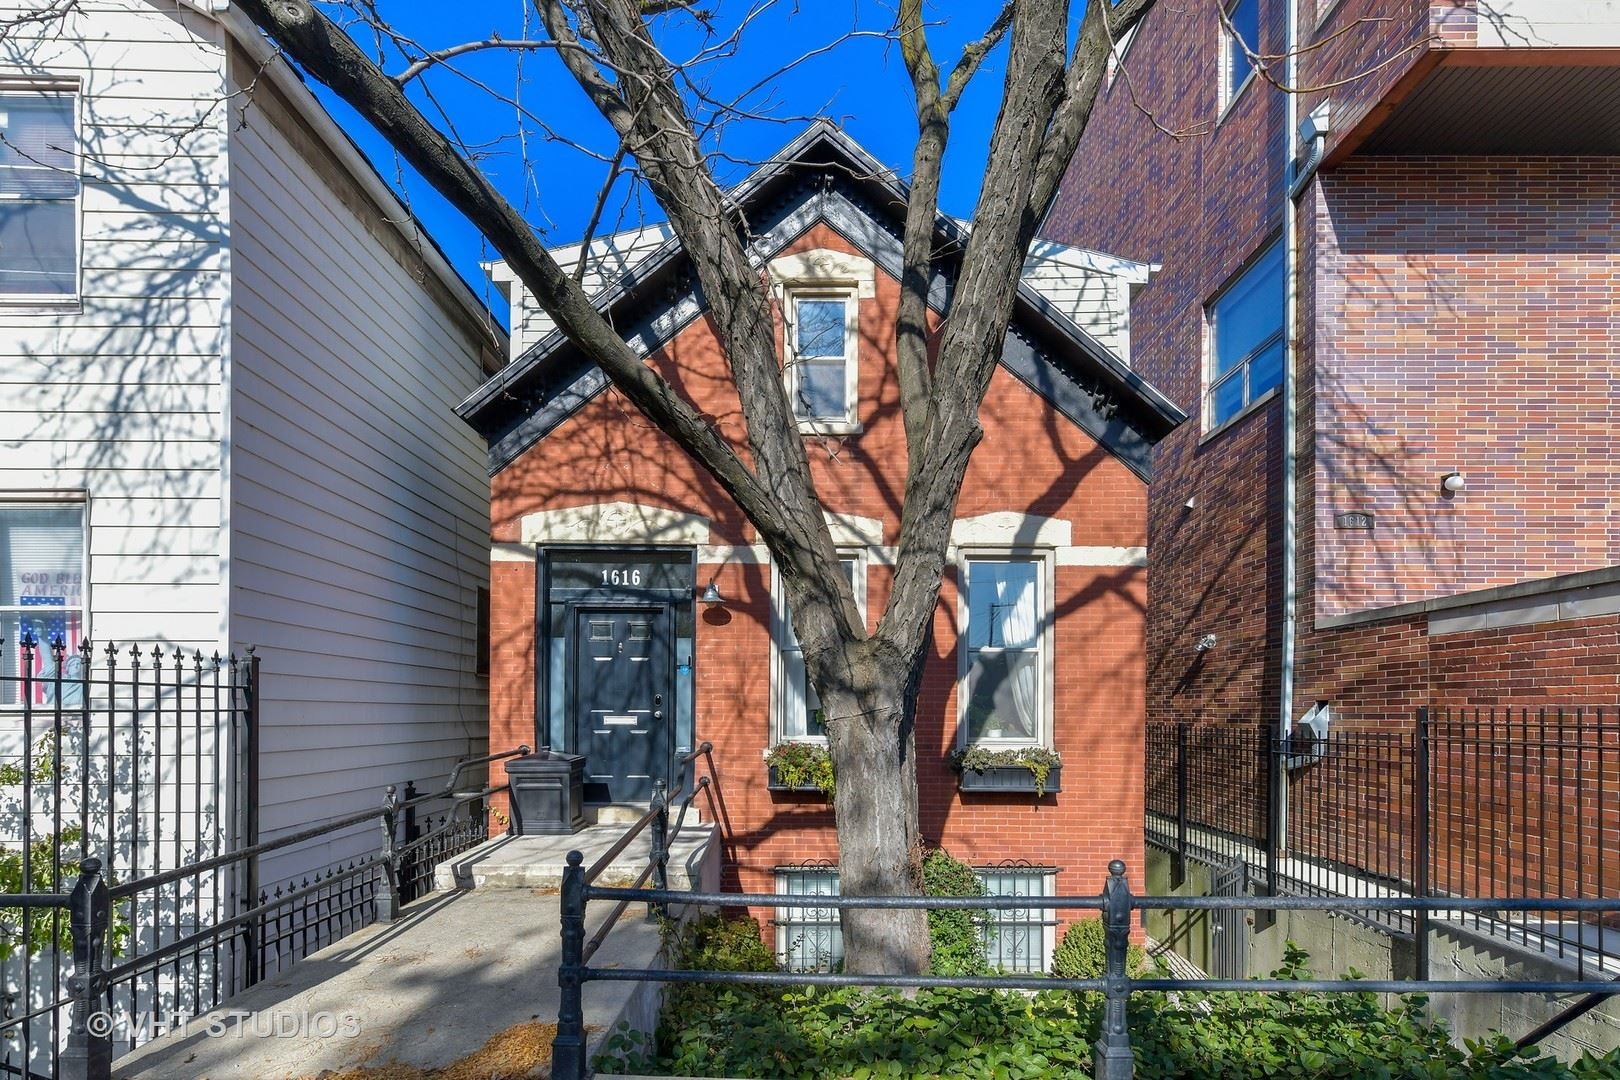 1616 W Julian Street, Chicago, IL 60622 - #: 10655661